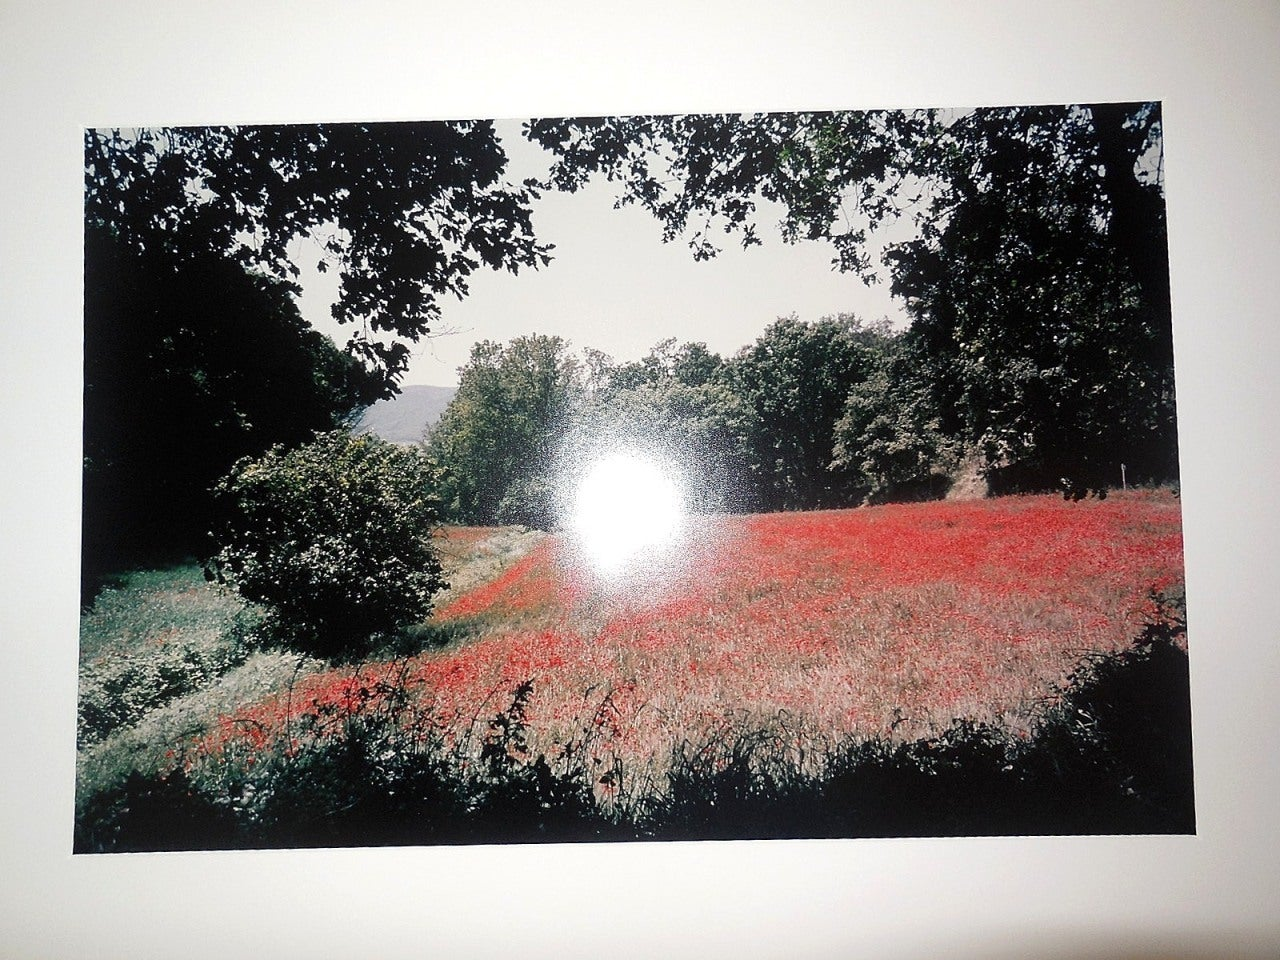 Tuscany, Field of Poppies, 1996 Large Vintage Color Photograph C Print Signed - Beige Landscape Photograph by Joel Meyerowitz